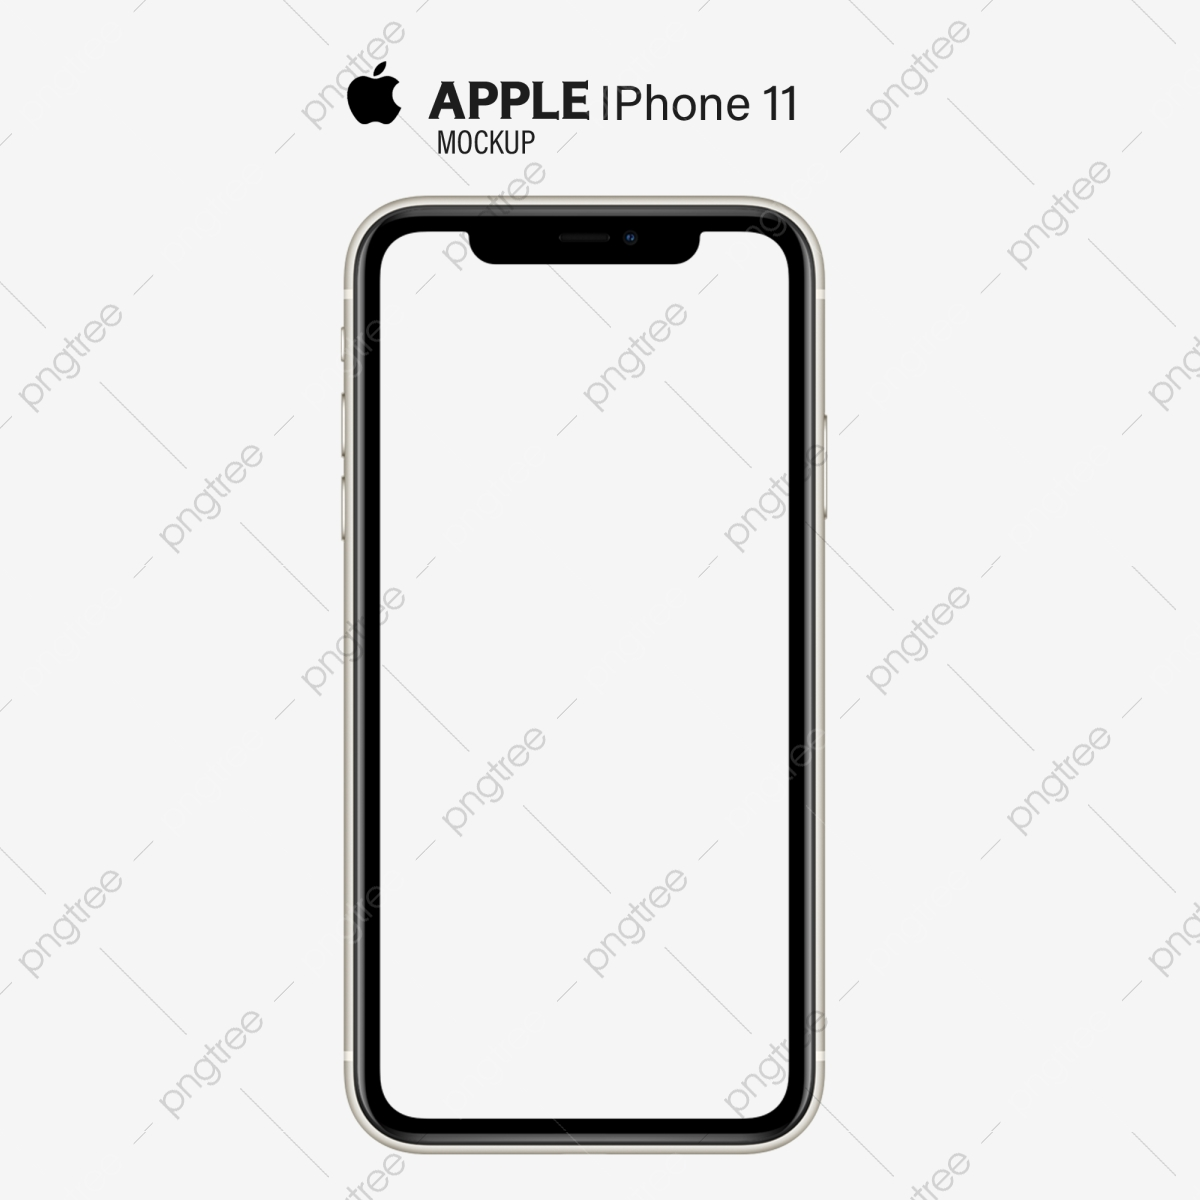 Apple Iphone 11 Pro Max Mockup Shape Transparent Background Iphone X Iphone 11 Apple Phone Png Transparent Clipart Image And Psd File For Free Download